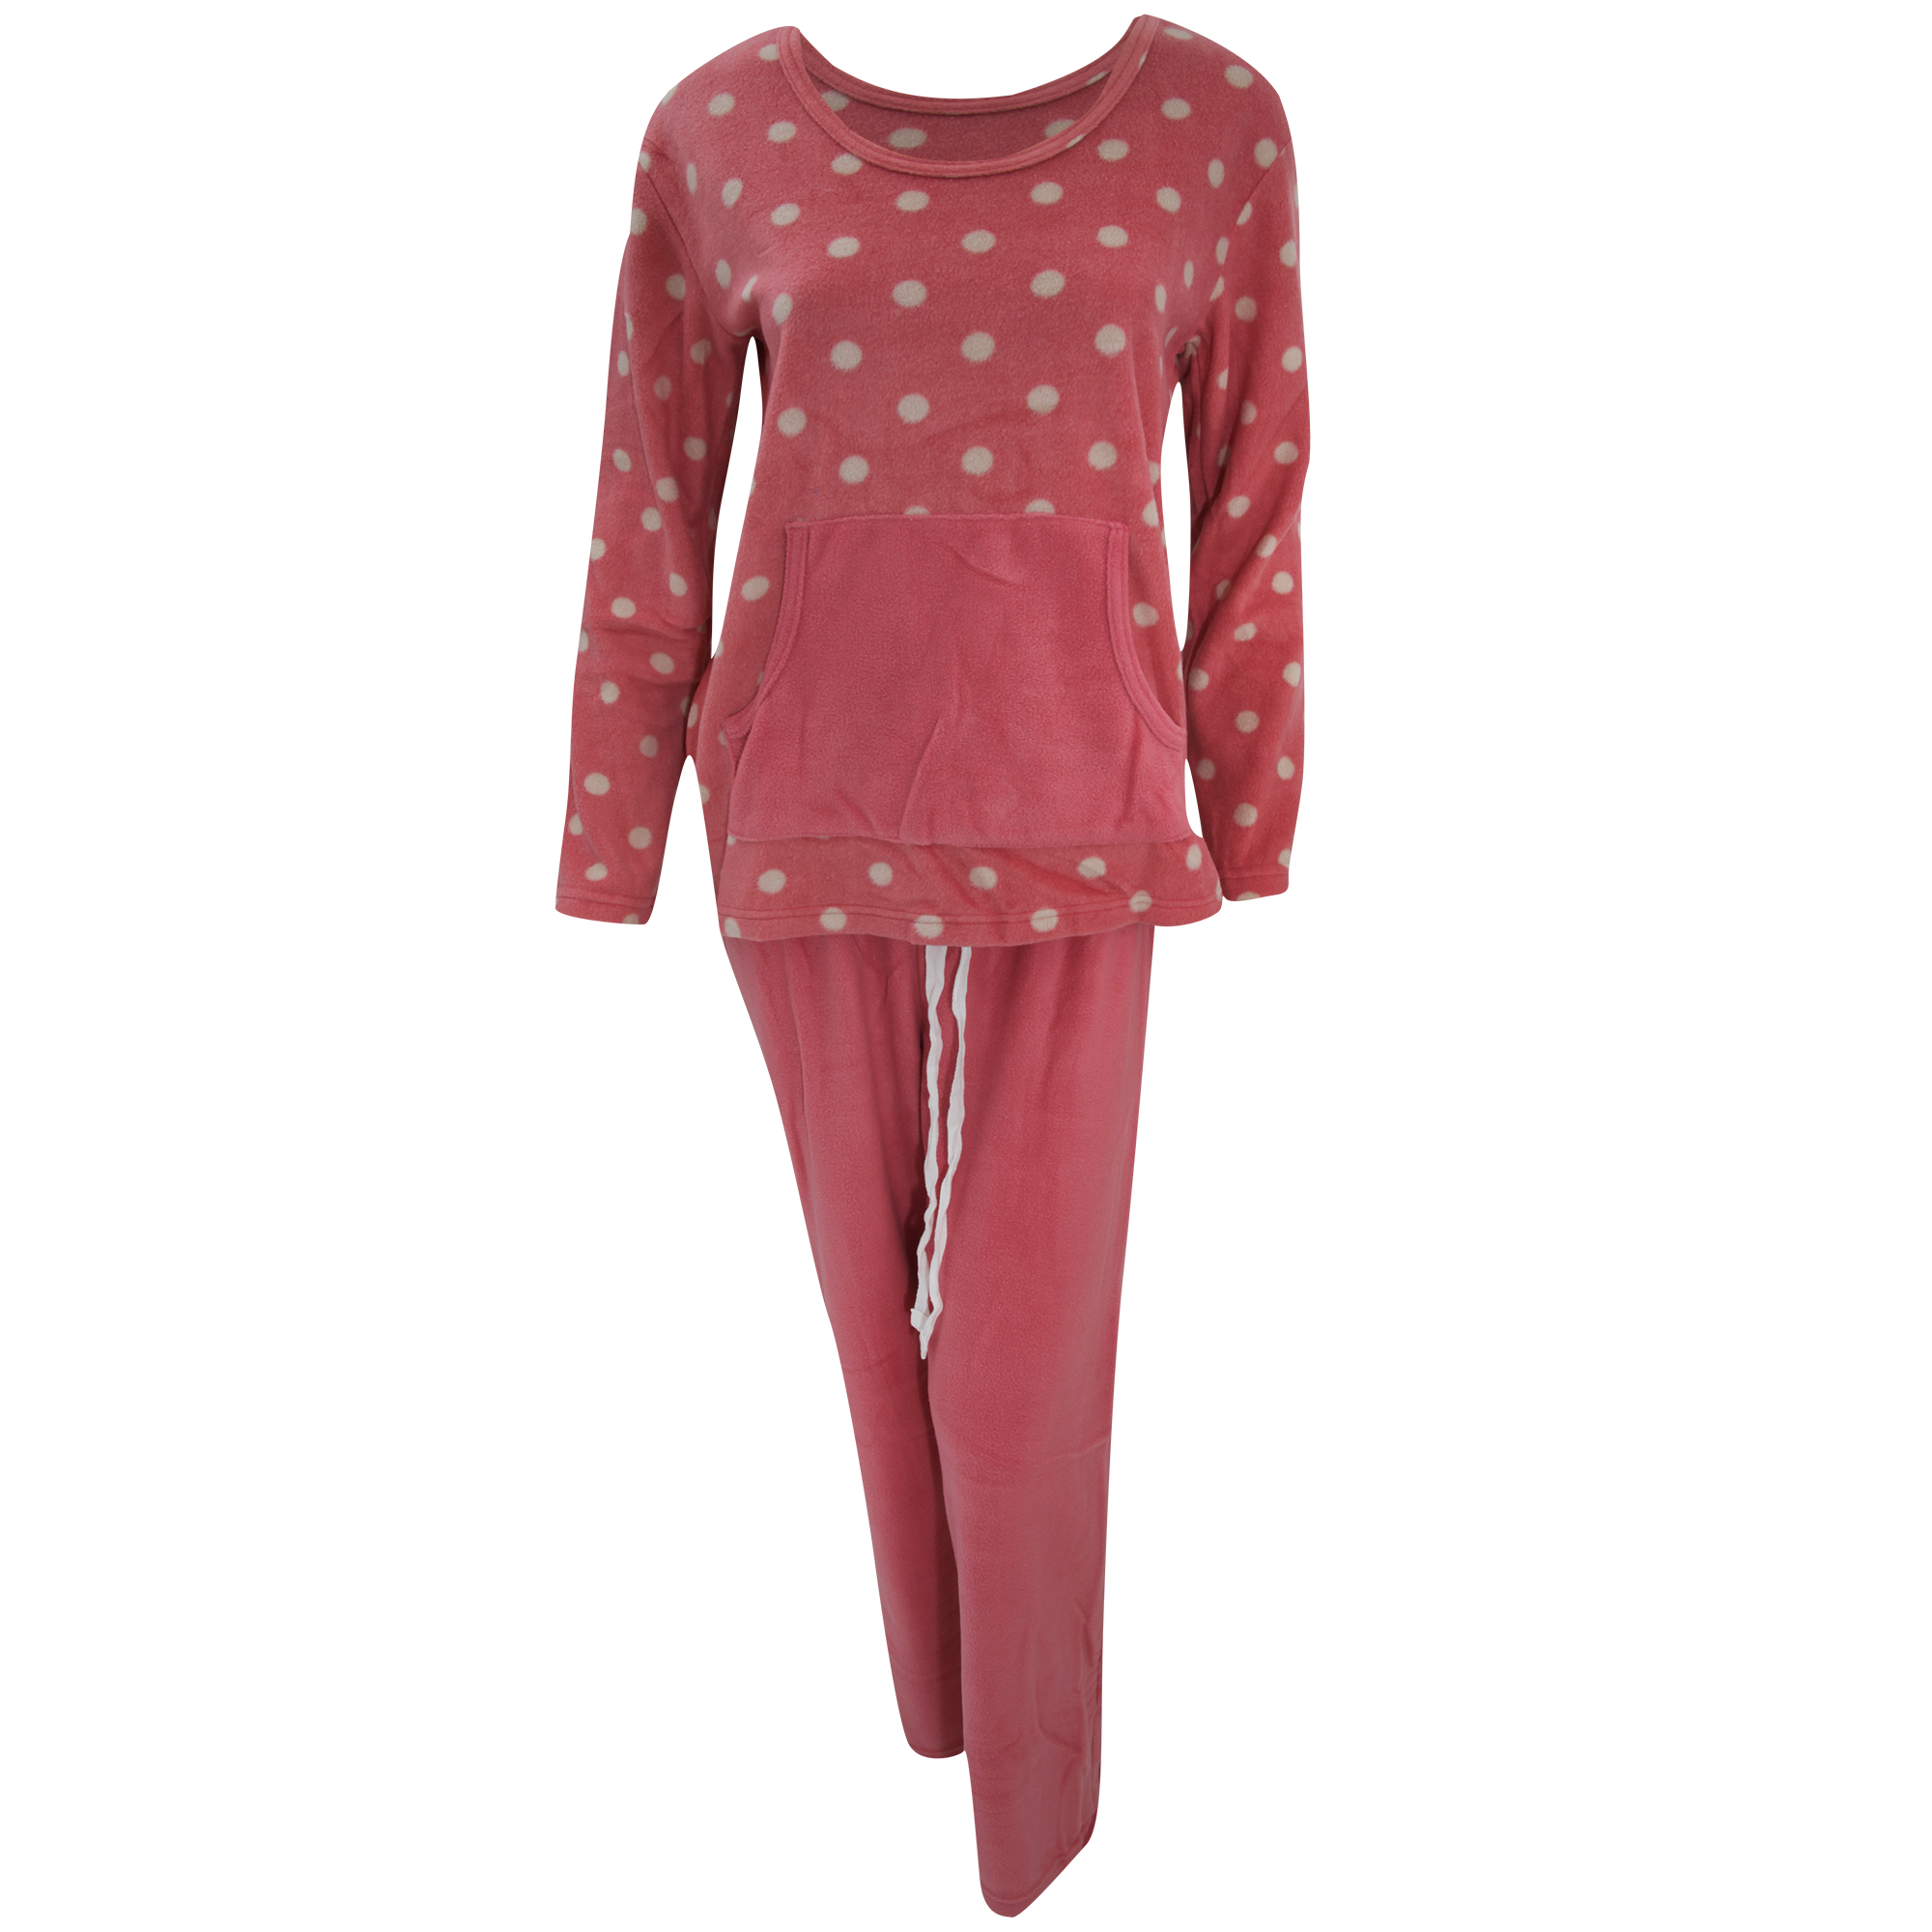 ensemble de pyjama en polaire femme ebay. Black Bedroom Furniture Sets. Home Design Ideas